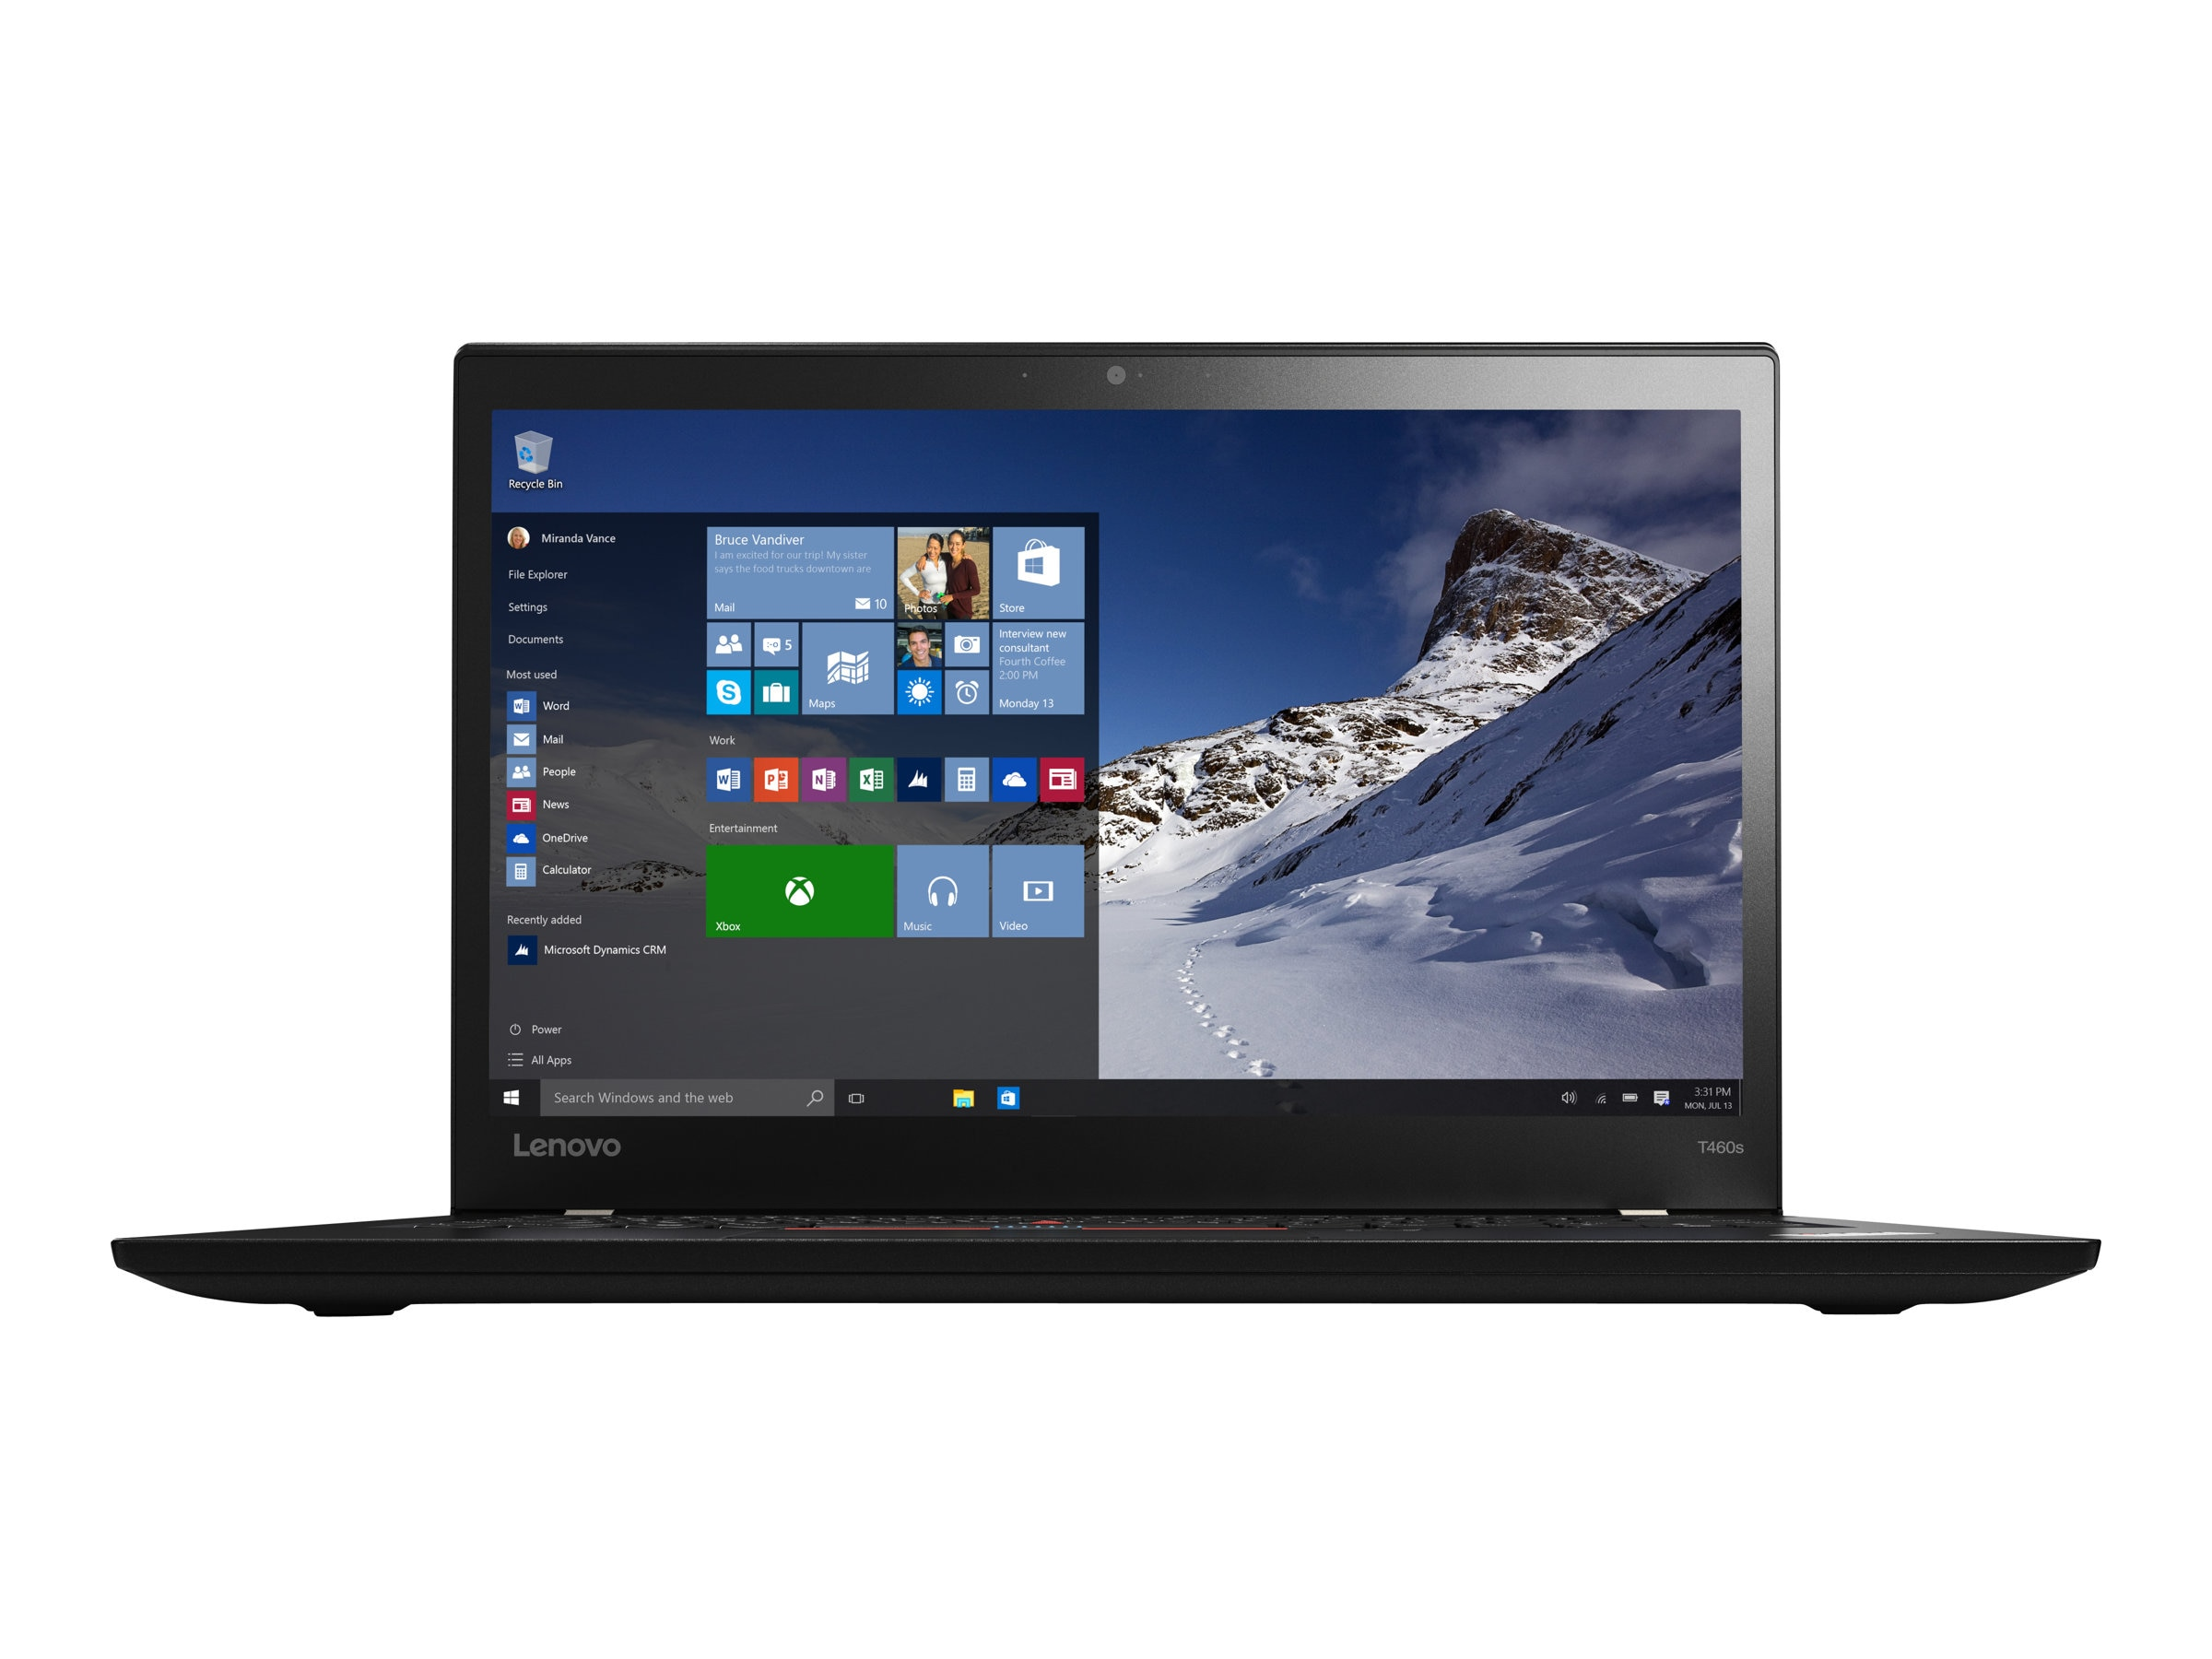 Lenovo TopSeller ThinkPad T460s 2.3GHz Core i5 14in display, 20F90039US, 31158601, Notebooks